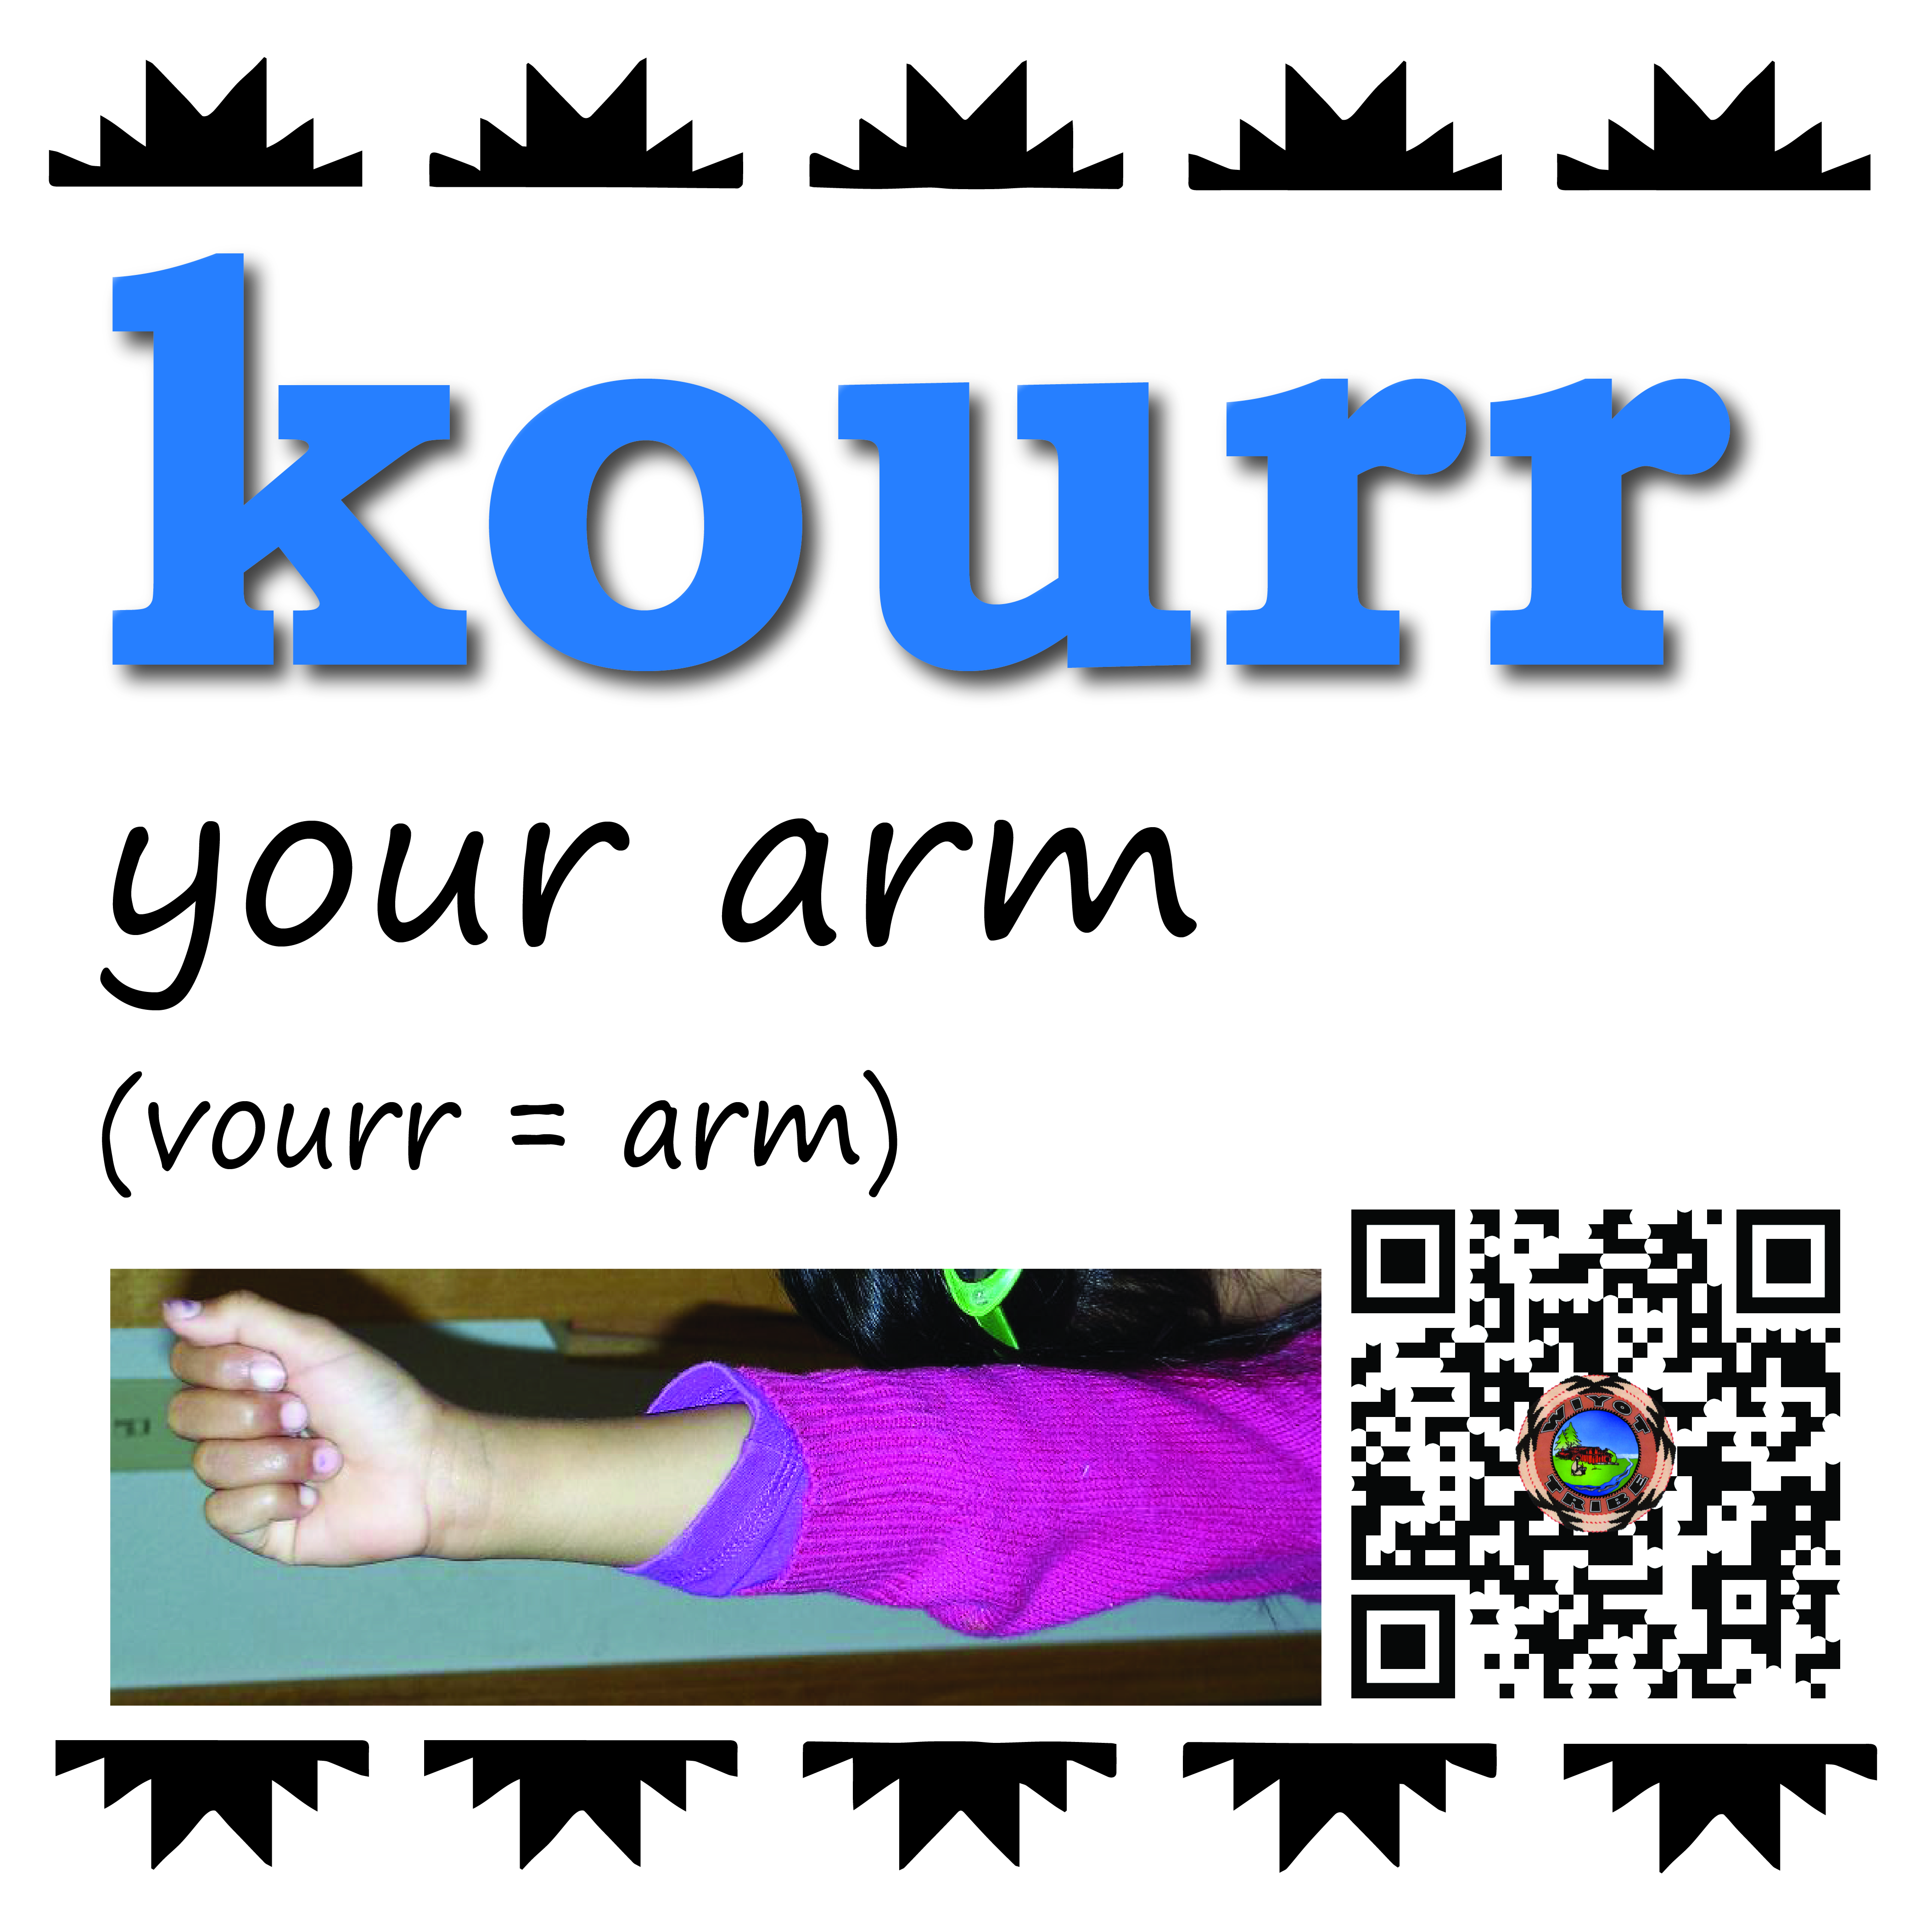 kourr_your_arm